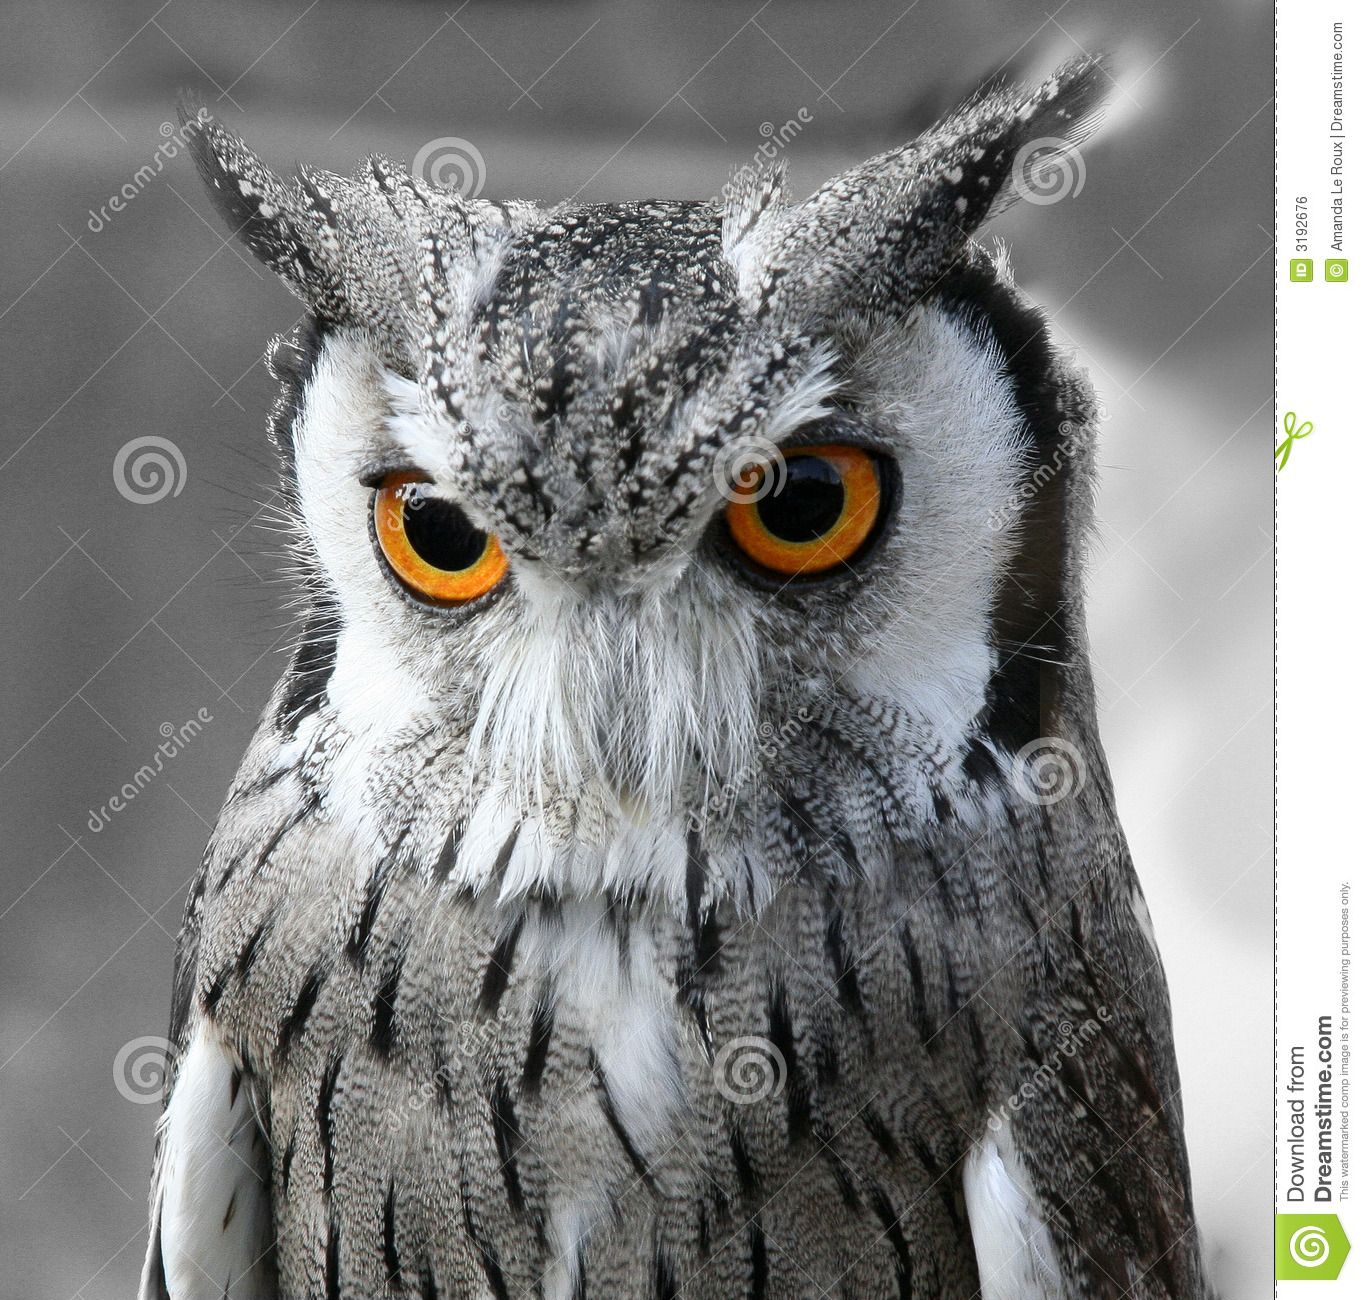 owl eyes head portrait yellow staring preview dreamstime